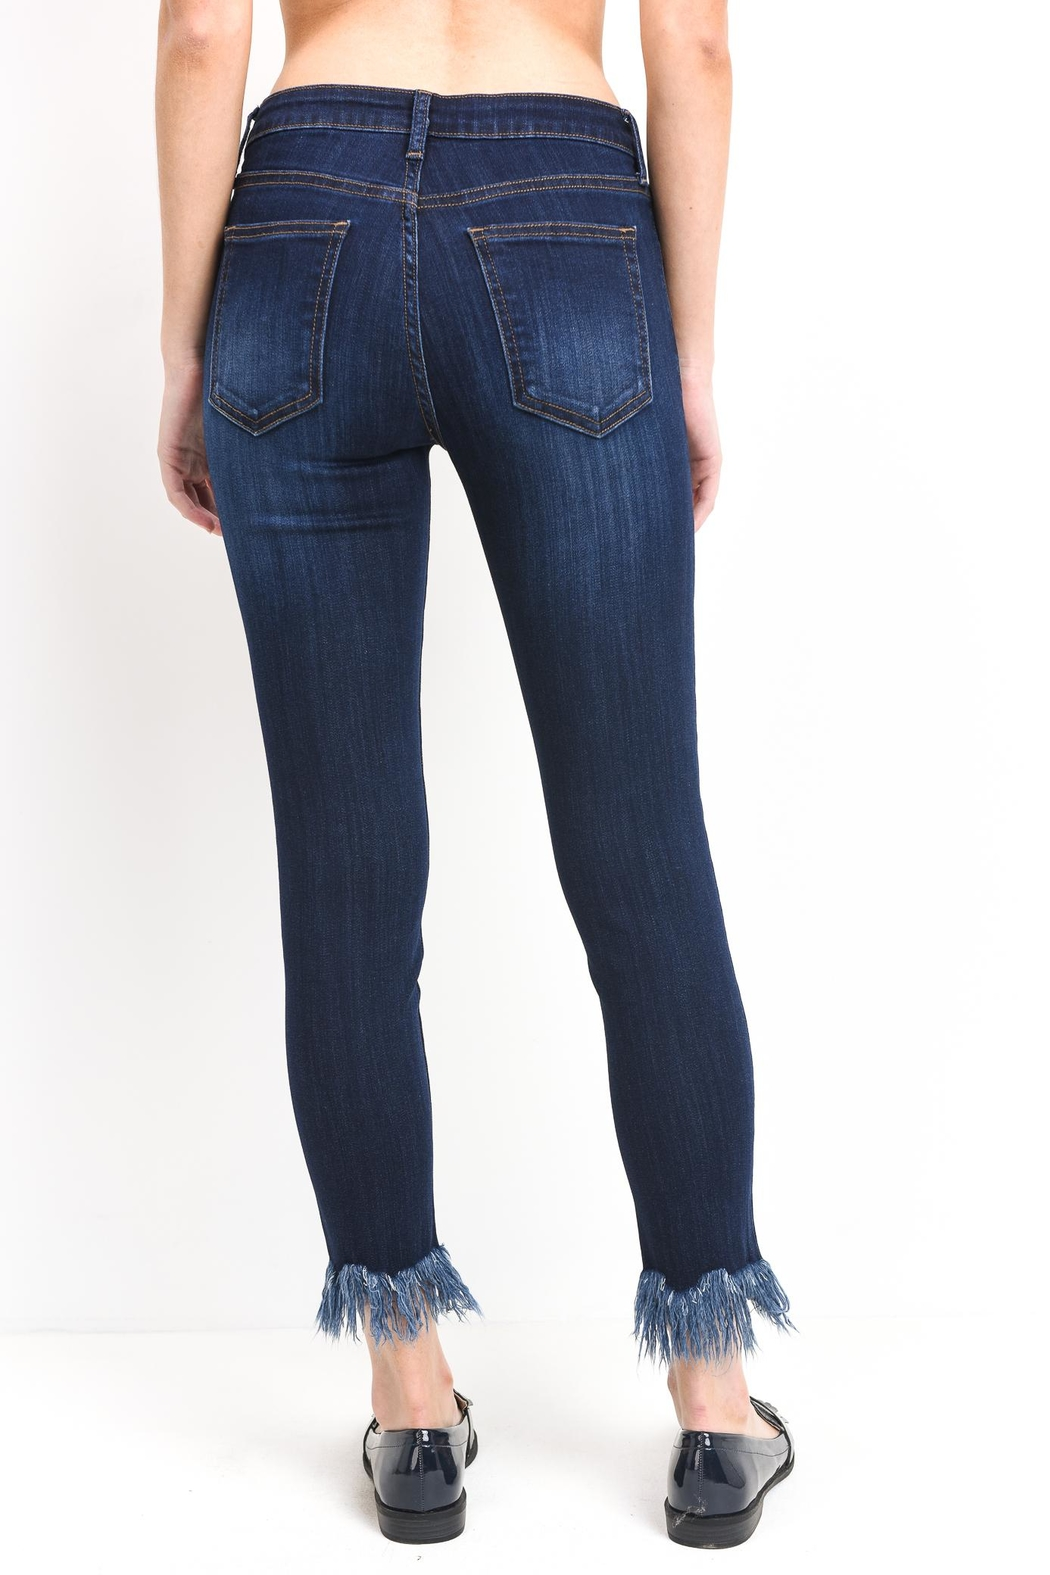 just black Fringe Skinny Jeans - Side Cropped Image